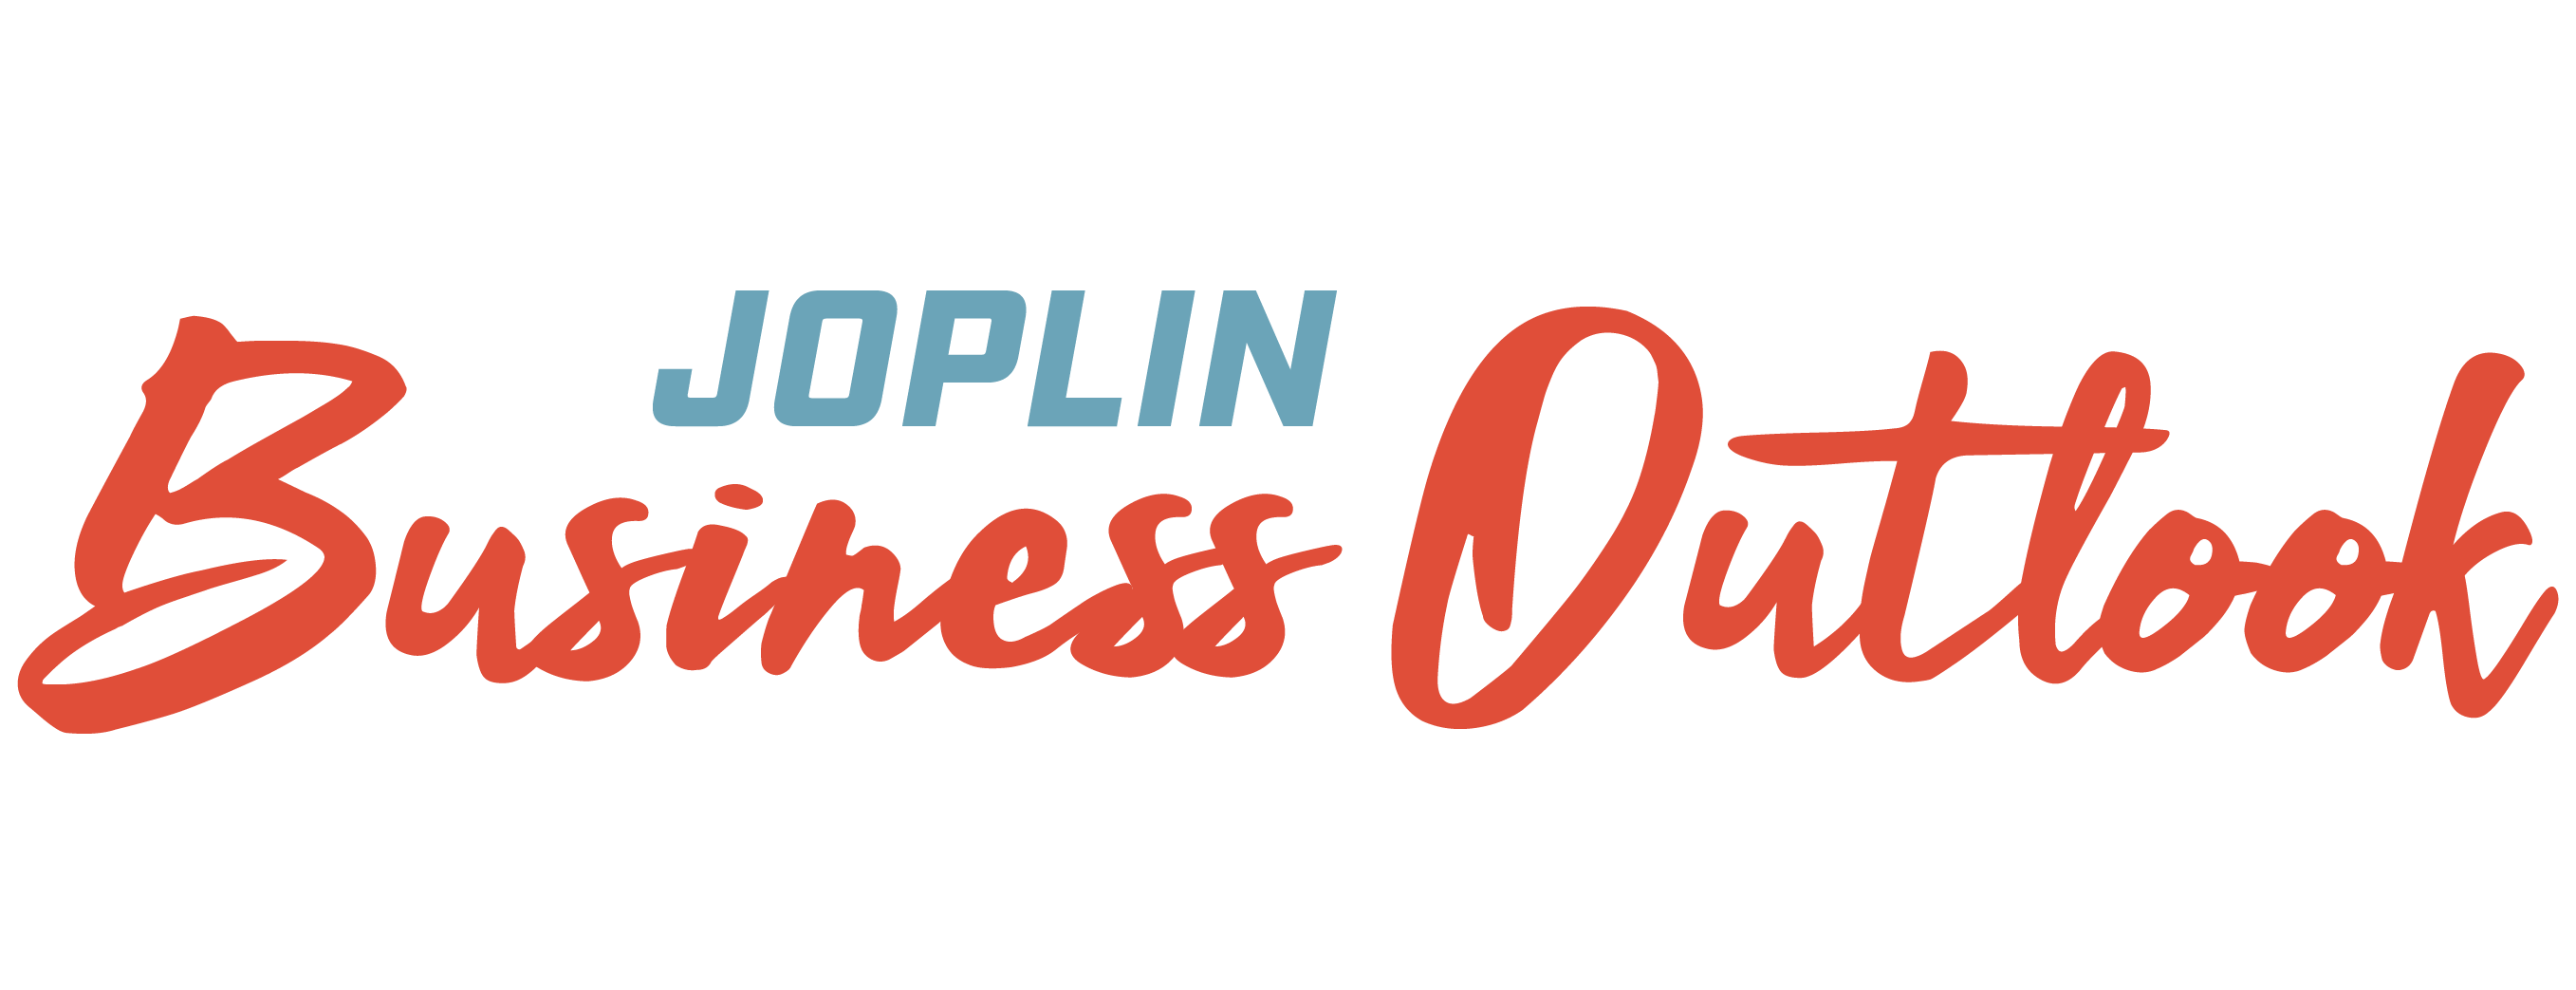 Joplin Business Outlook